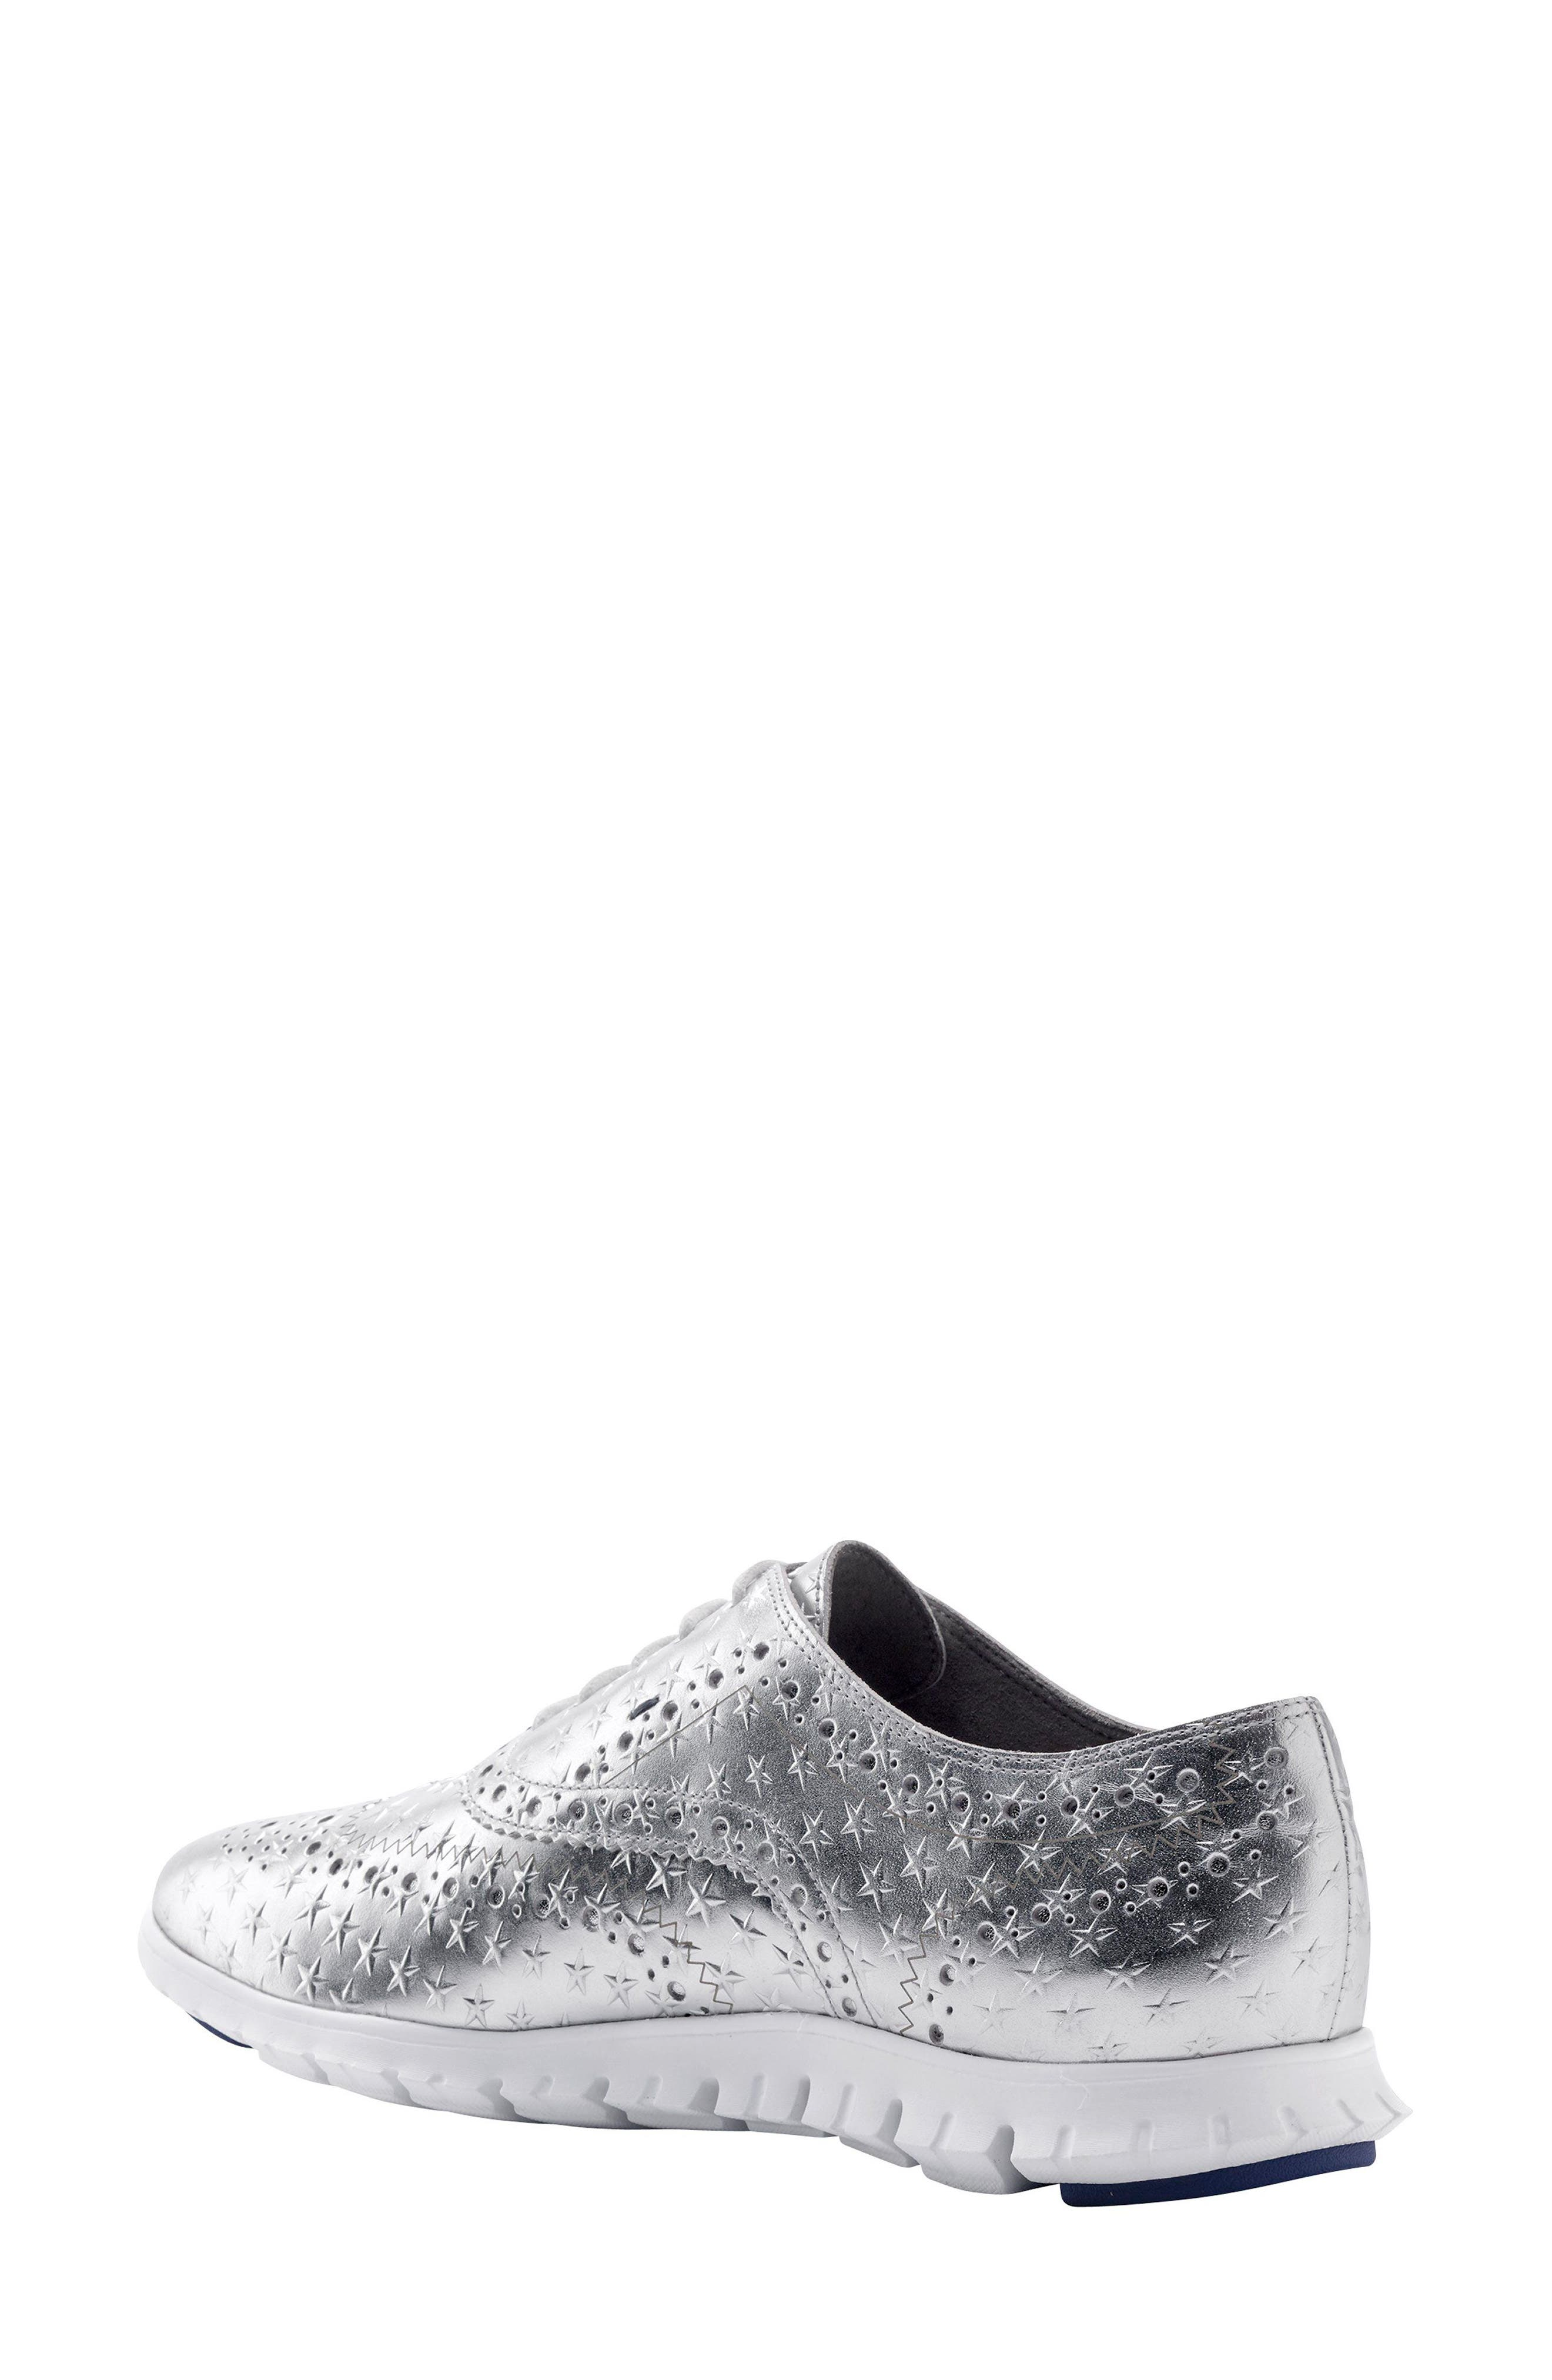 'ZeroGrand' Perforated Wingtip,                             Alternate thumbnail 72, color,